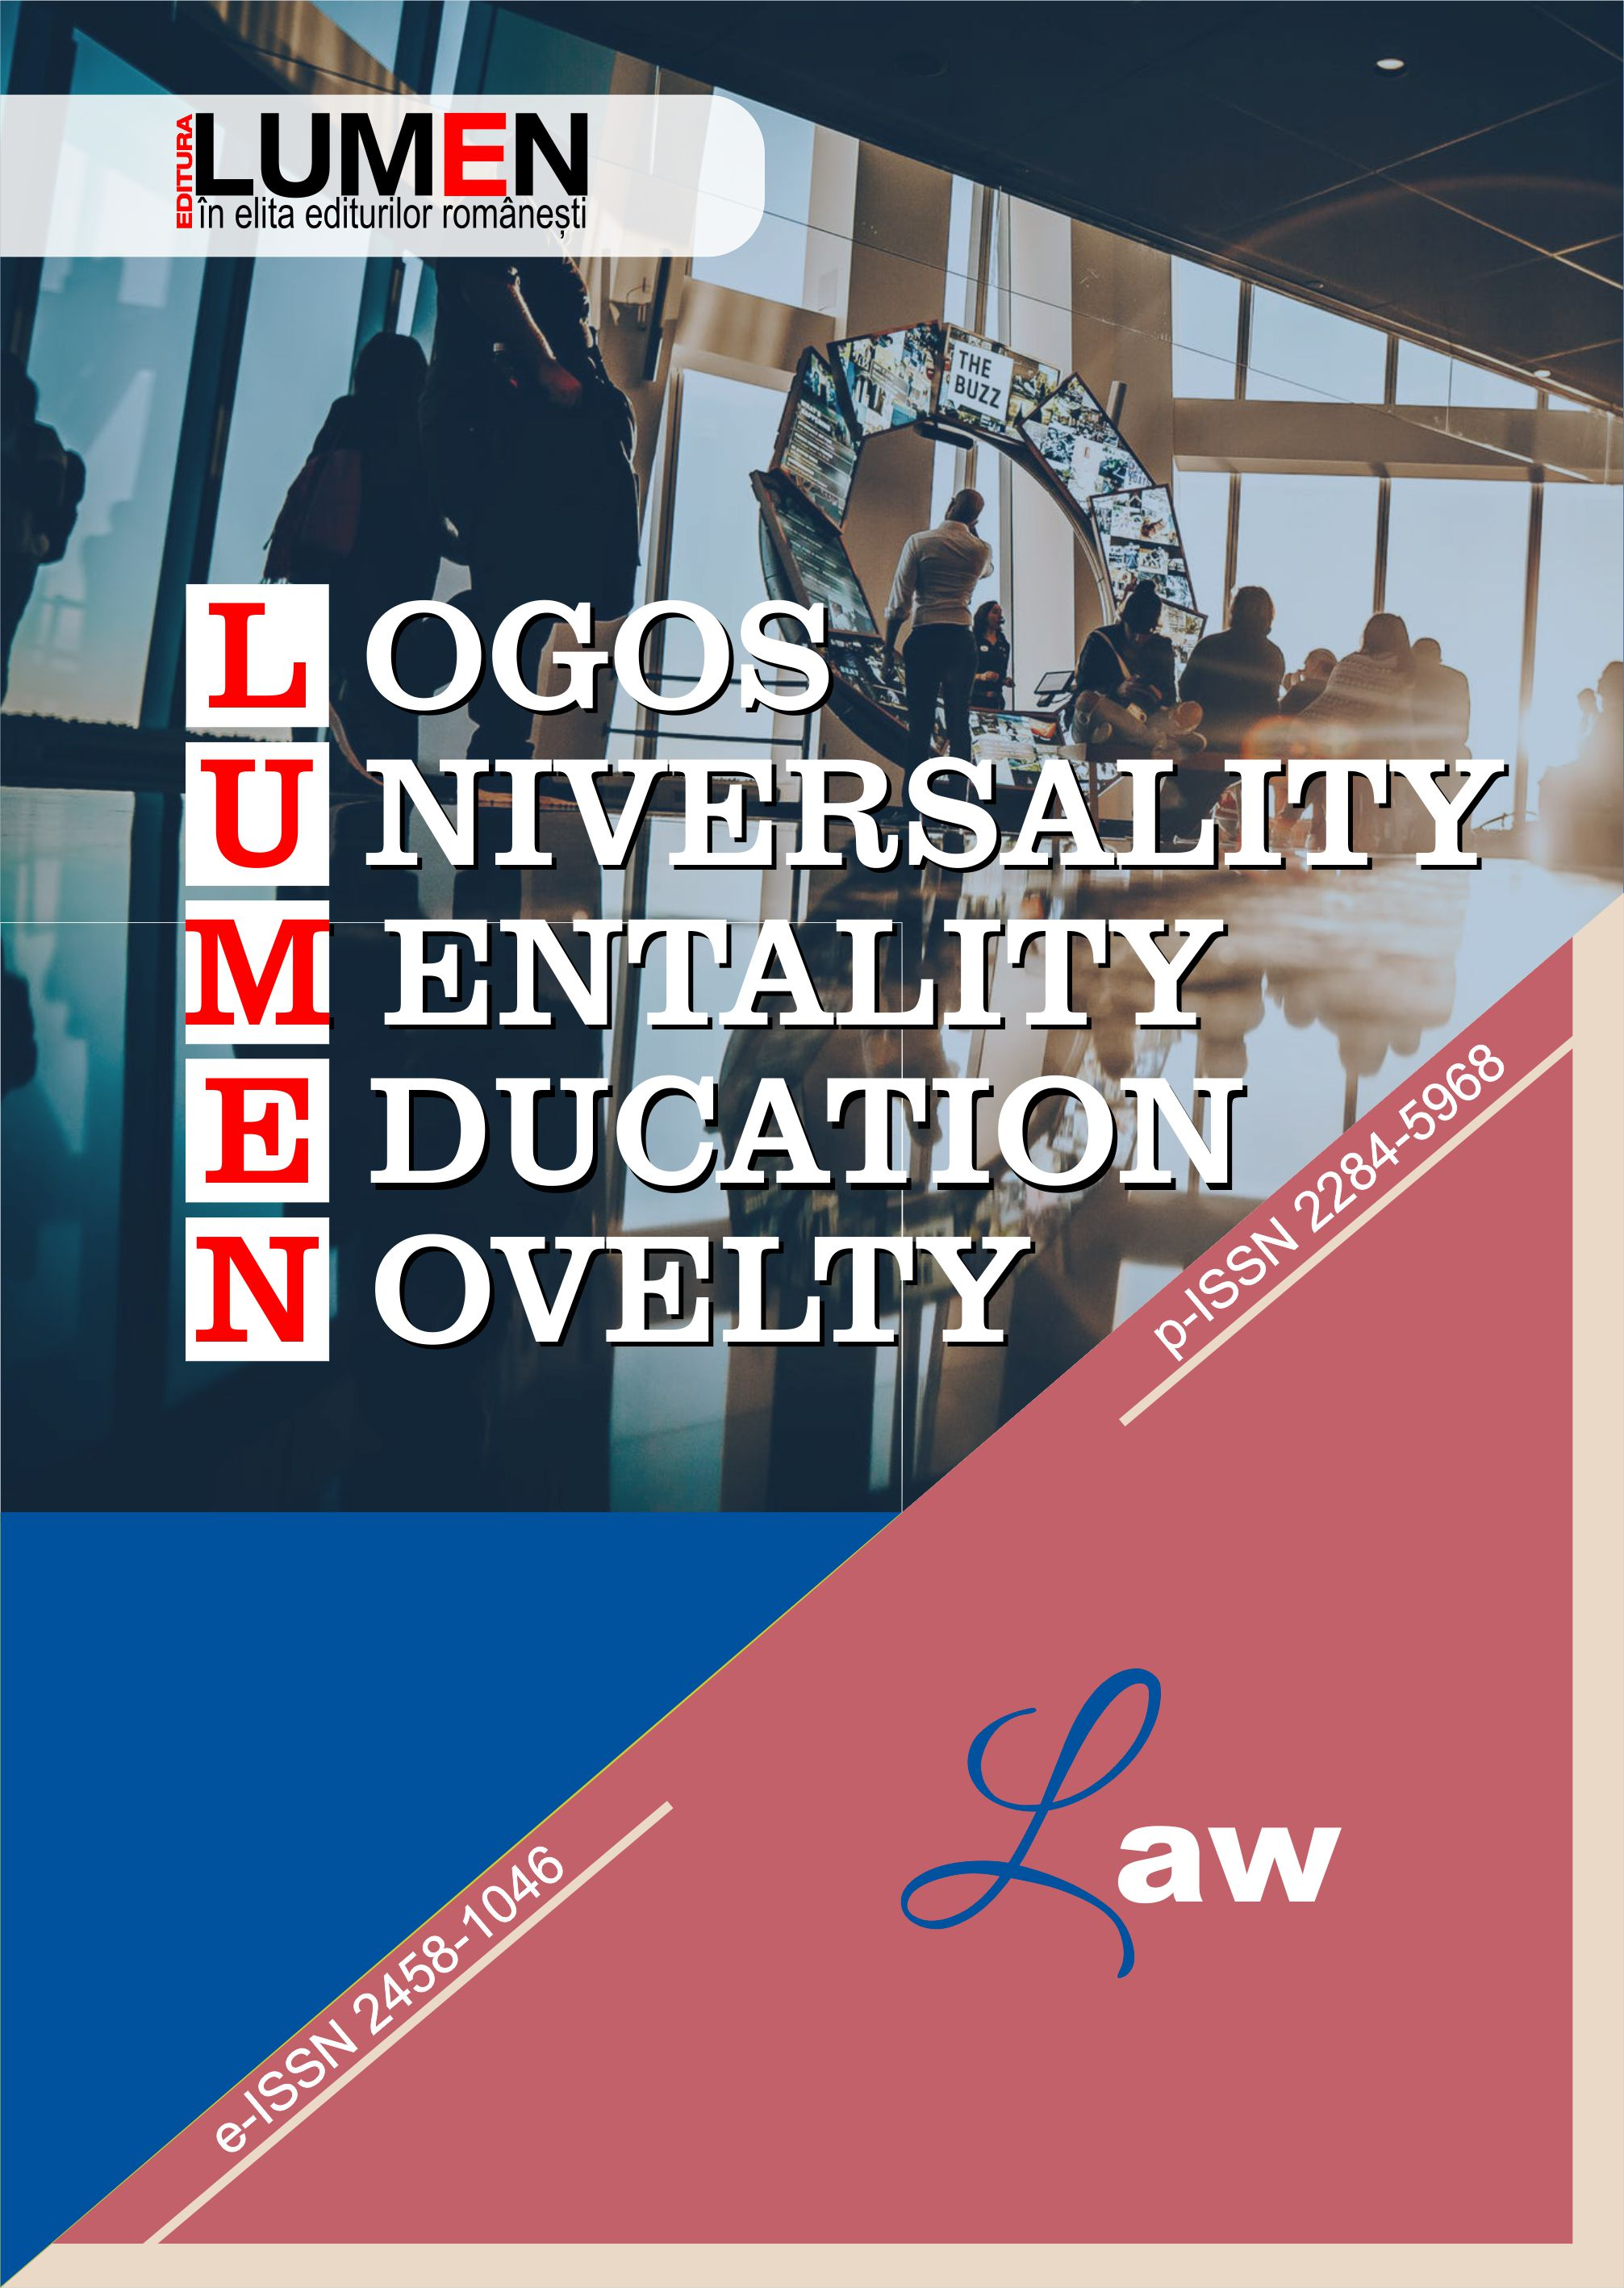 Publish your work with LUMEN COVER LOGOS Law 2019